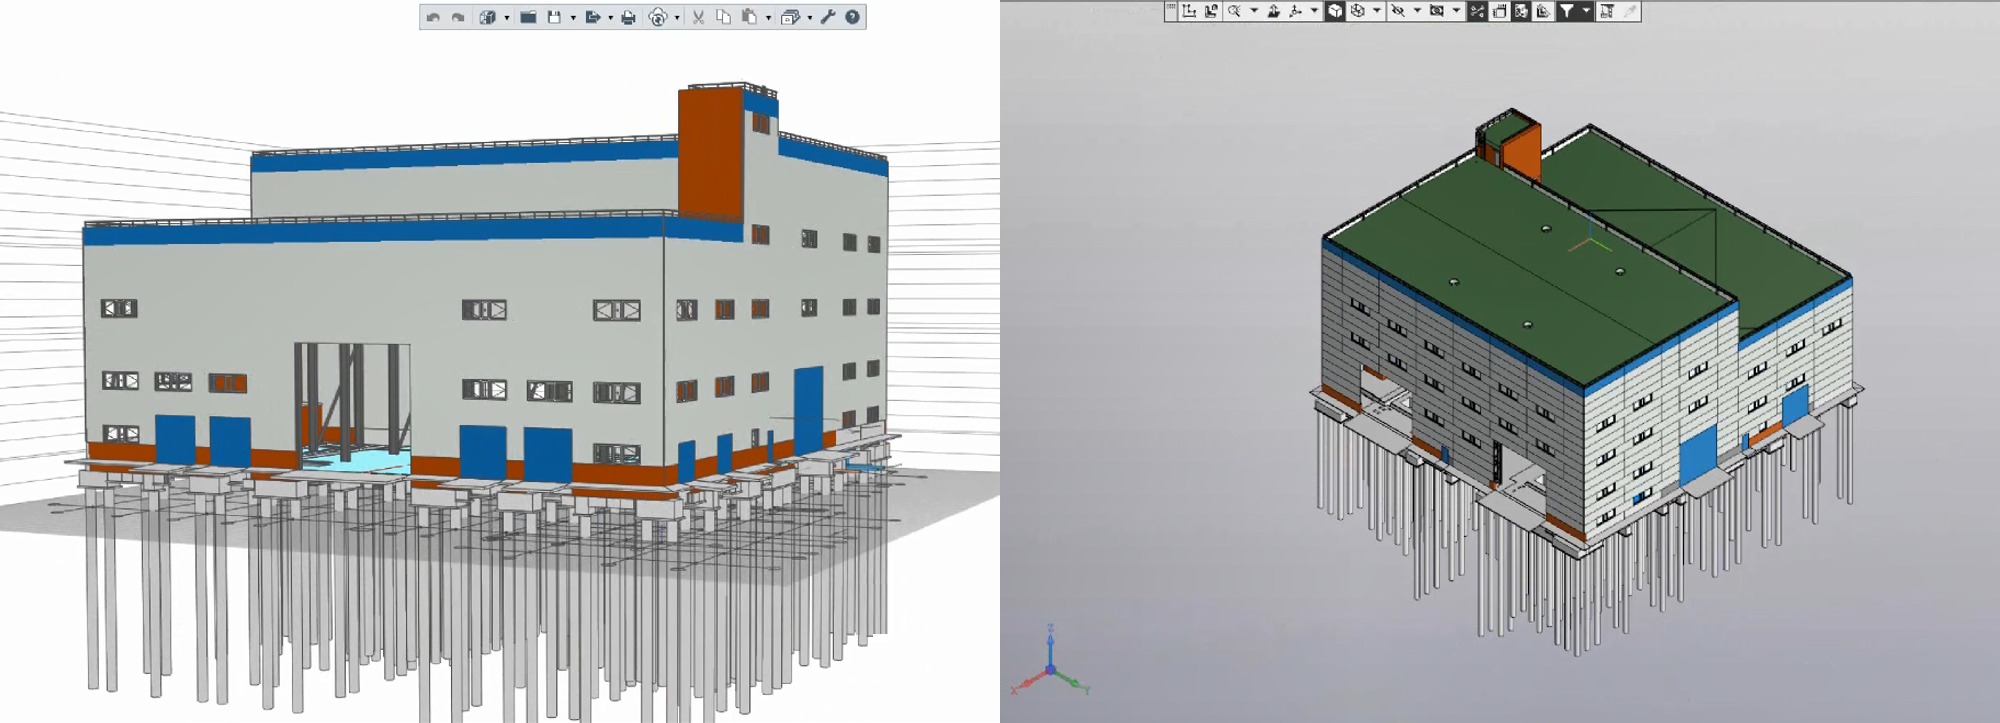 Model of the ventilation plant facility exported to .c3d forma